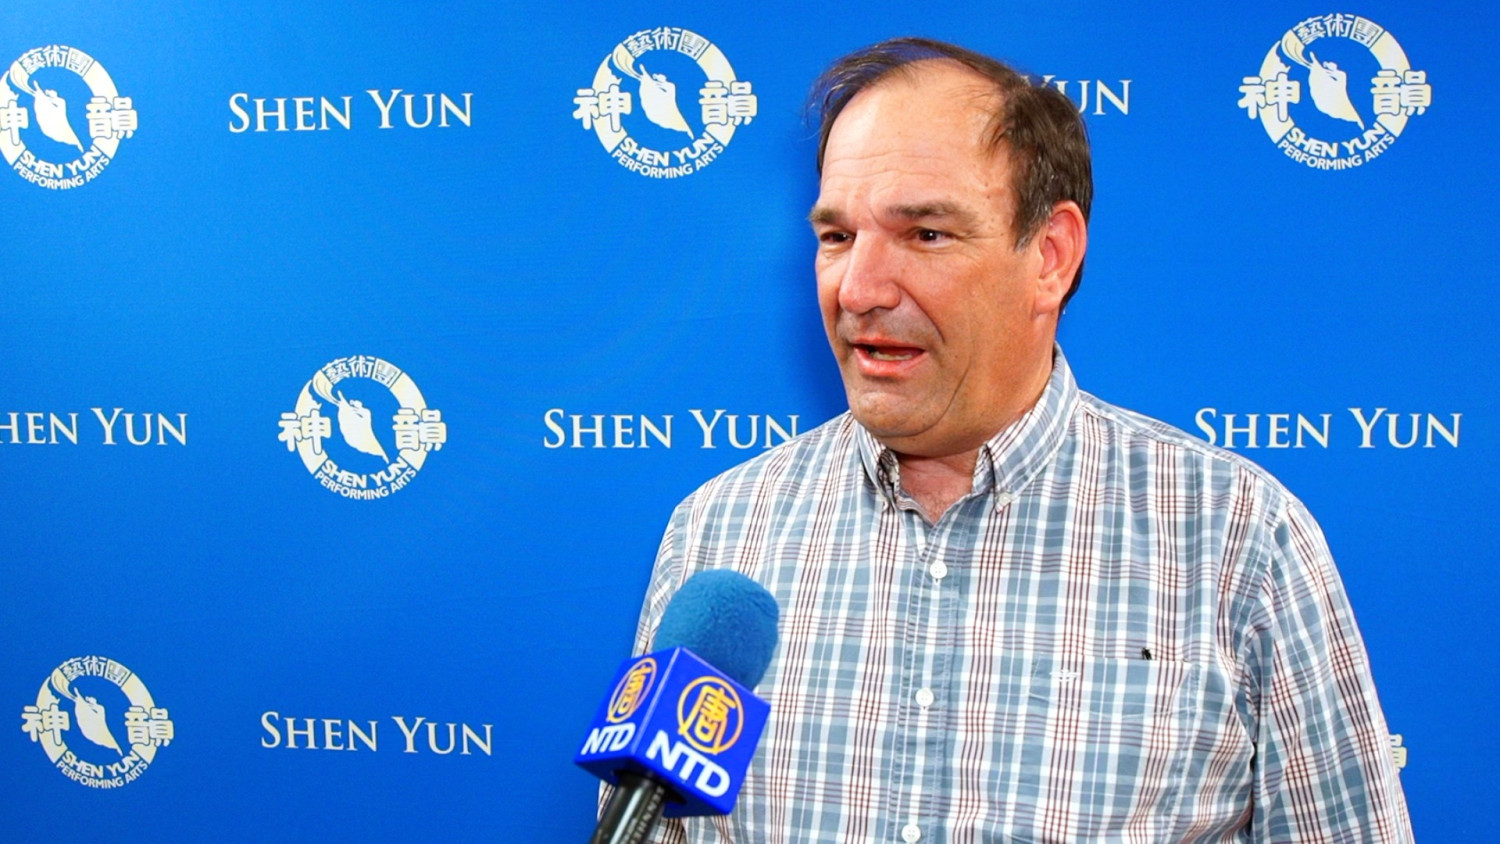 Shen Yun's First Performance in North Dakota Inspires Audience to Learn More